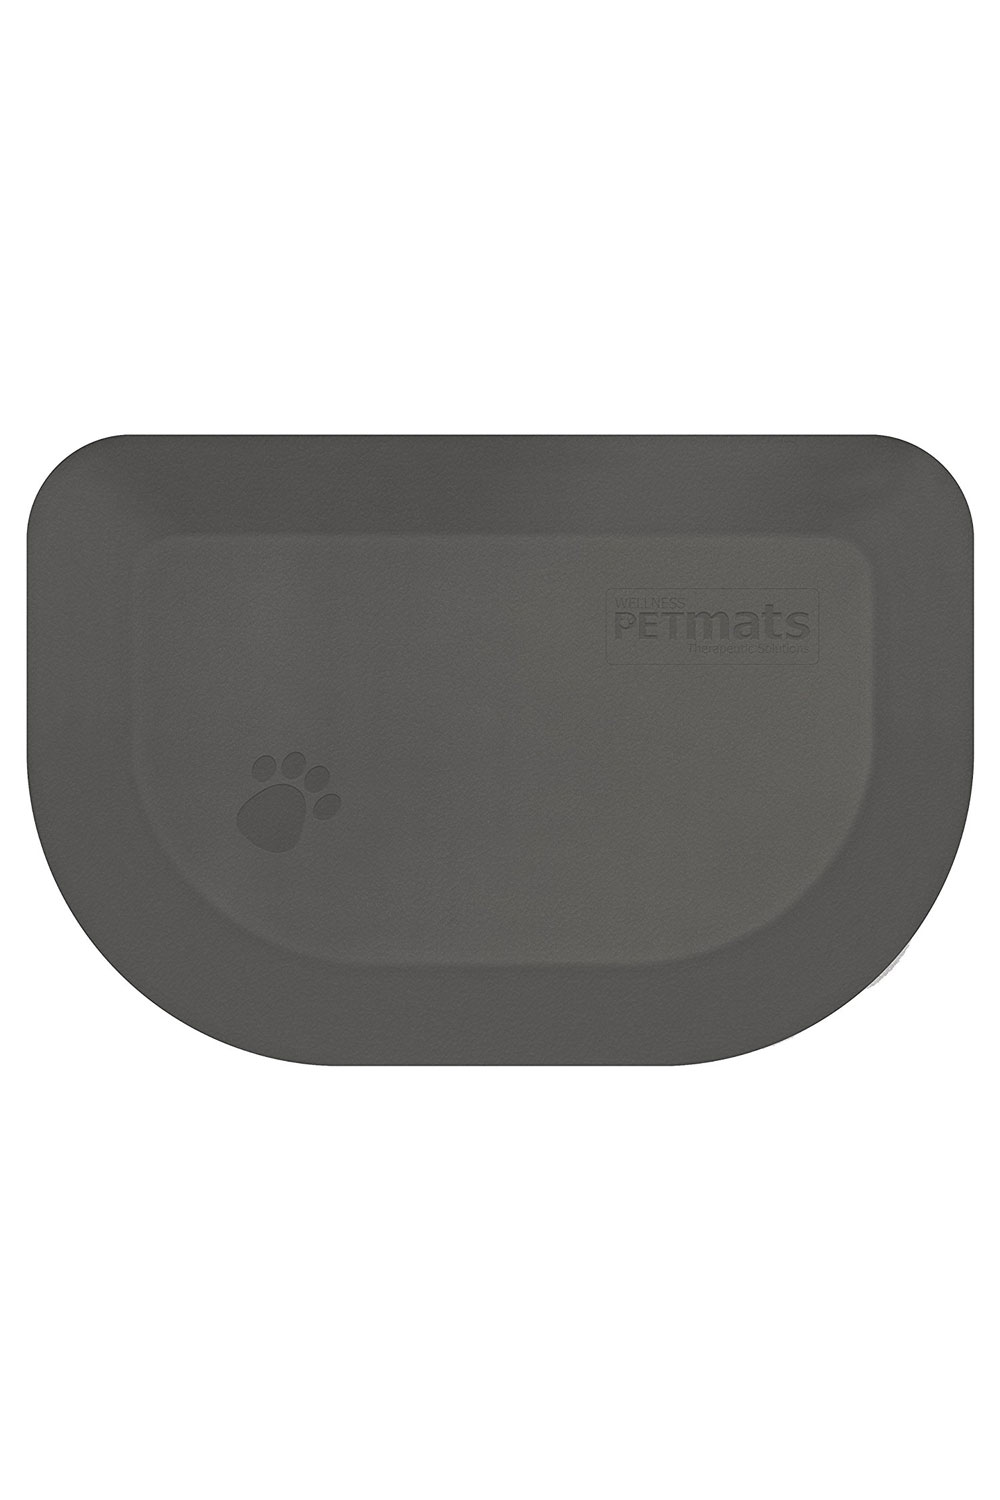 Pet Wellness Mat